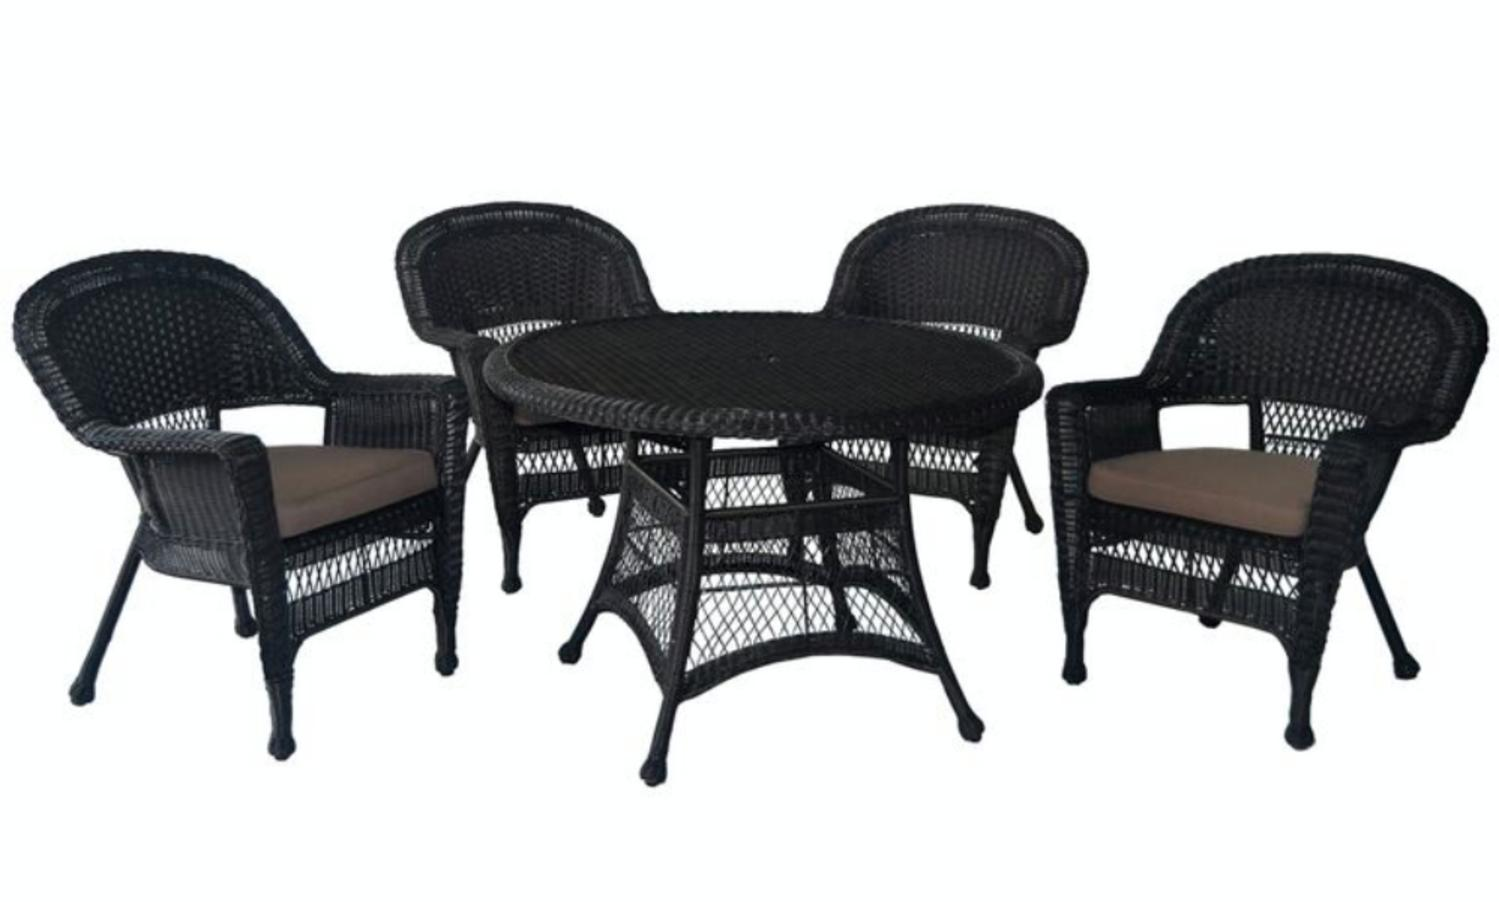 5-Piece Espresso Wicker Chair & Table Patio Dining Furniture Set Brown Cushions by CC Outdoor Living